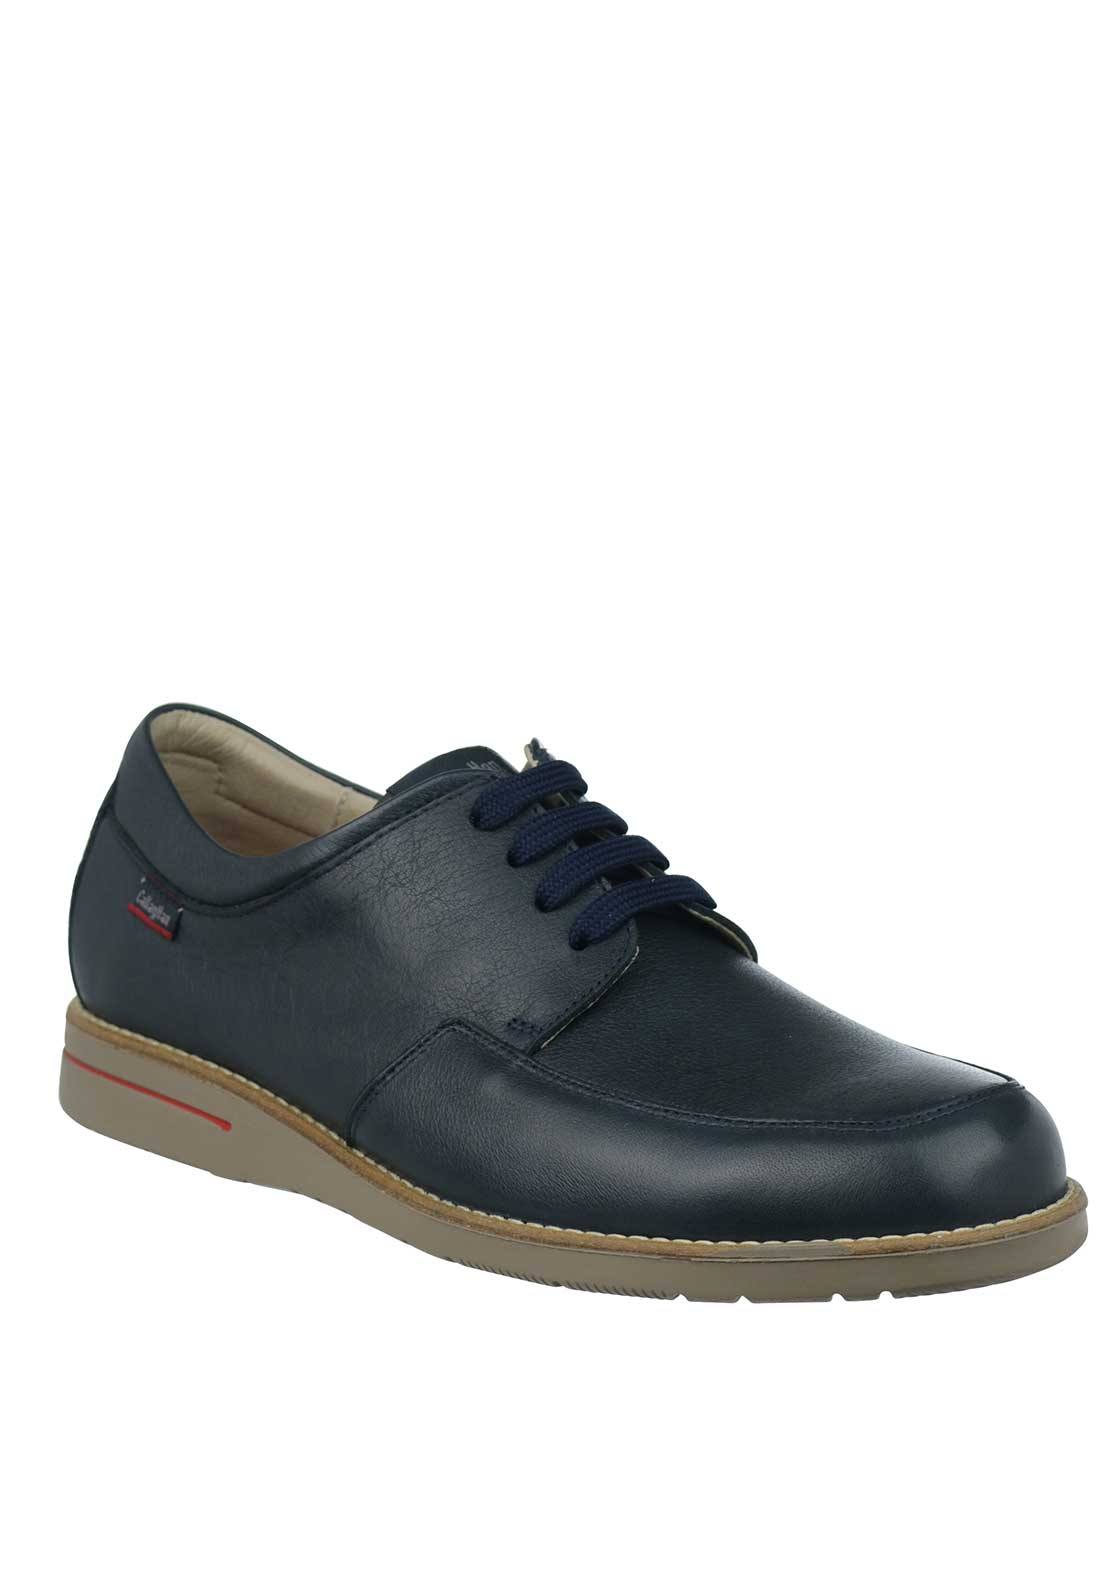 Callaghan Lace Up Leather Shoe, Navy